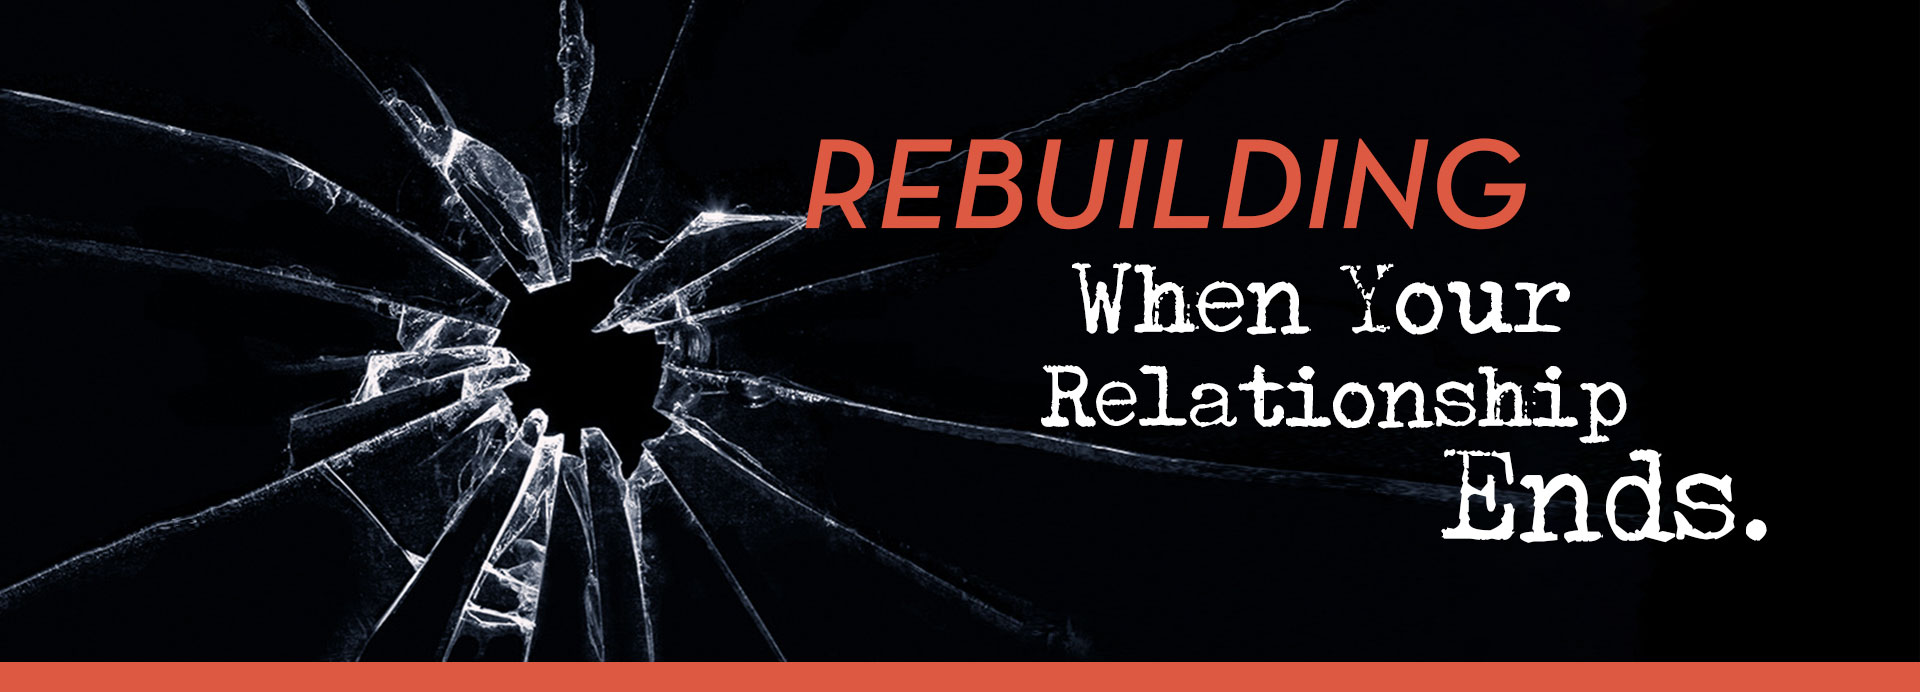 Rebuilding-When-Your-Relationship-Ends_1920x692.jpg